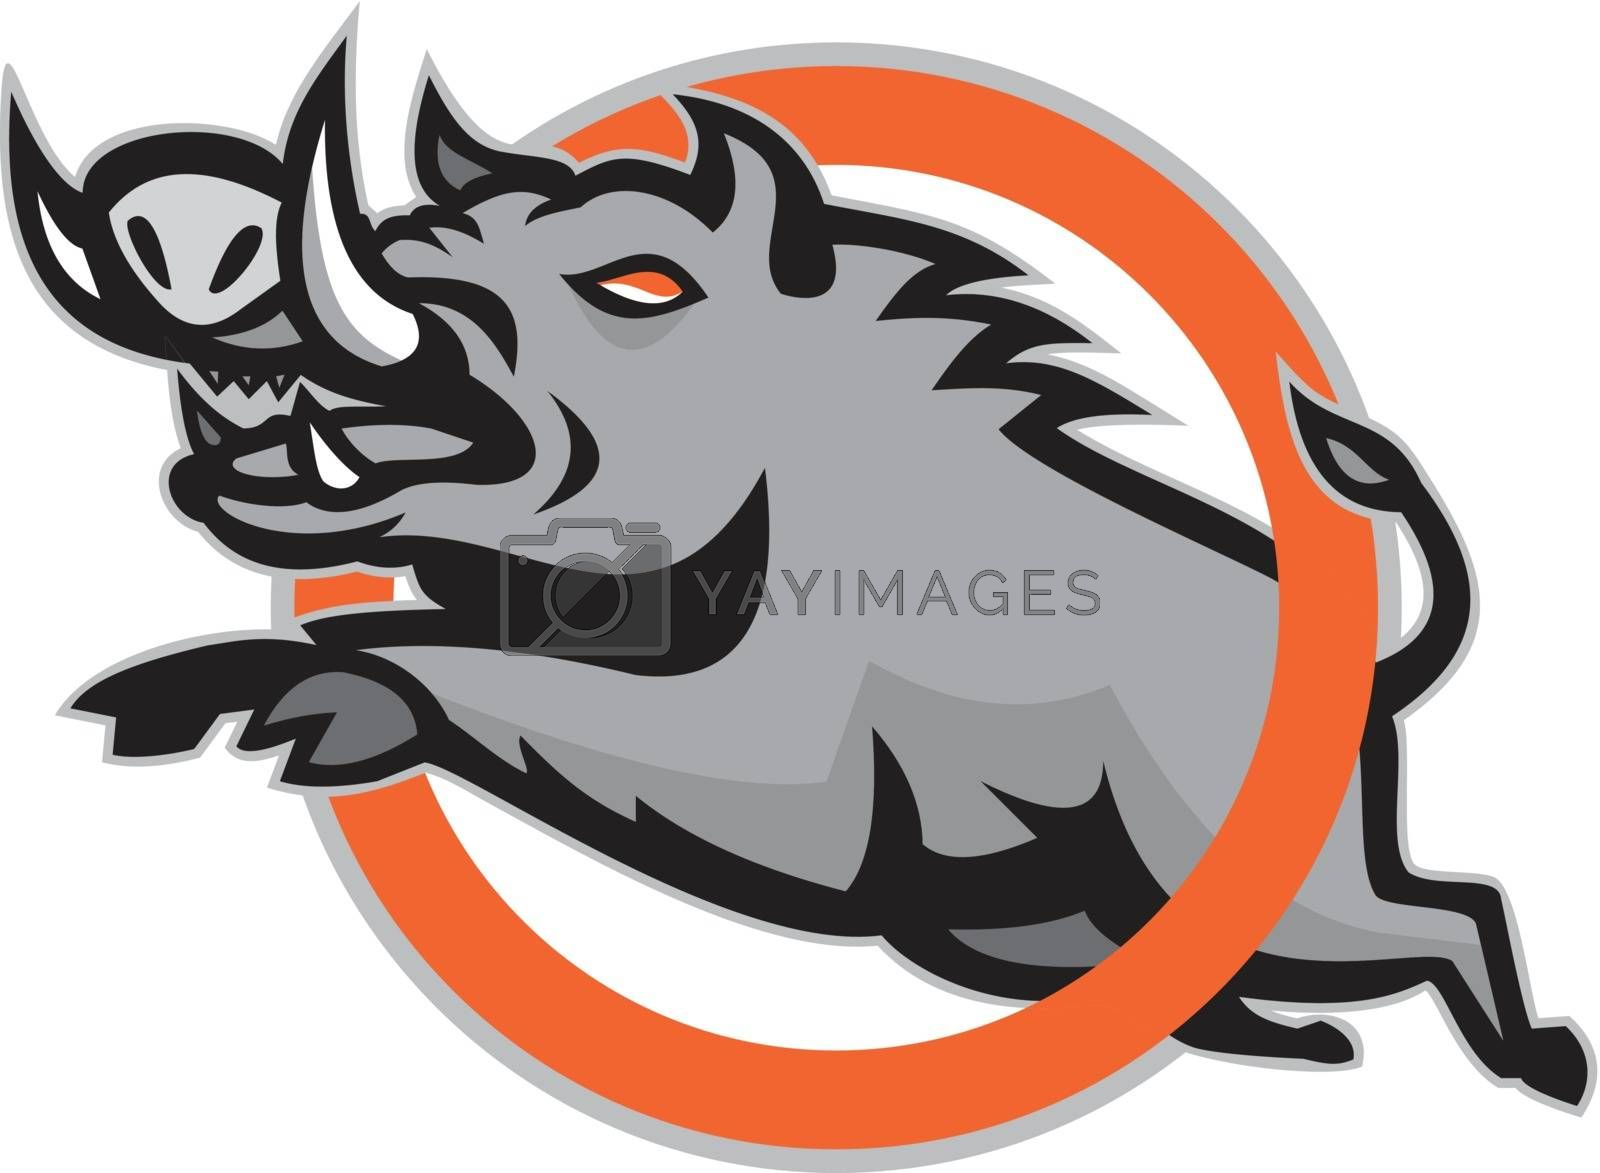 Illustration of a wild pig boar razorback jumping through a ring or circle on isolated background done in retro style.